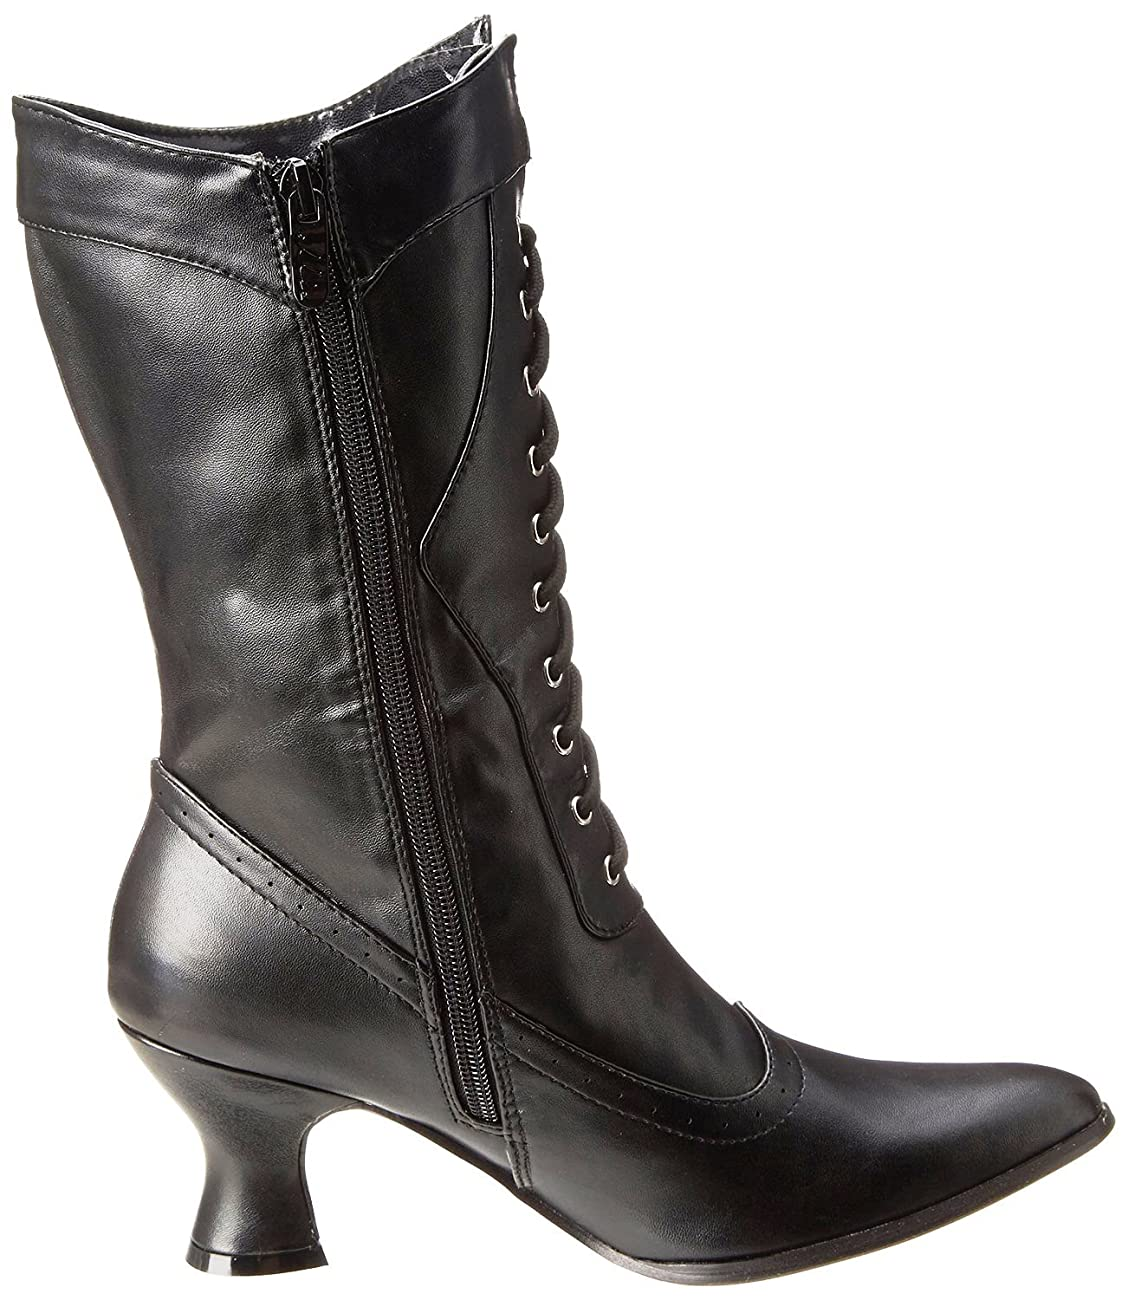 Ellie Shoes Women's Amelia Victorian Boots Black Polyurethane Vintage Ankle Boot with Zipper 1